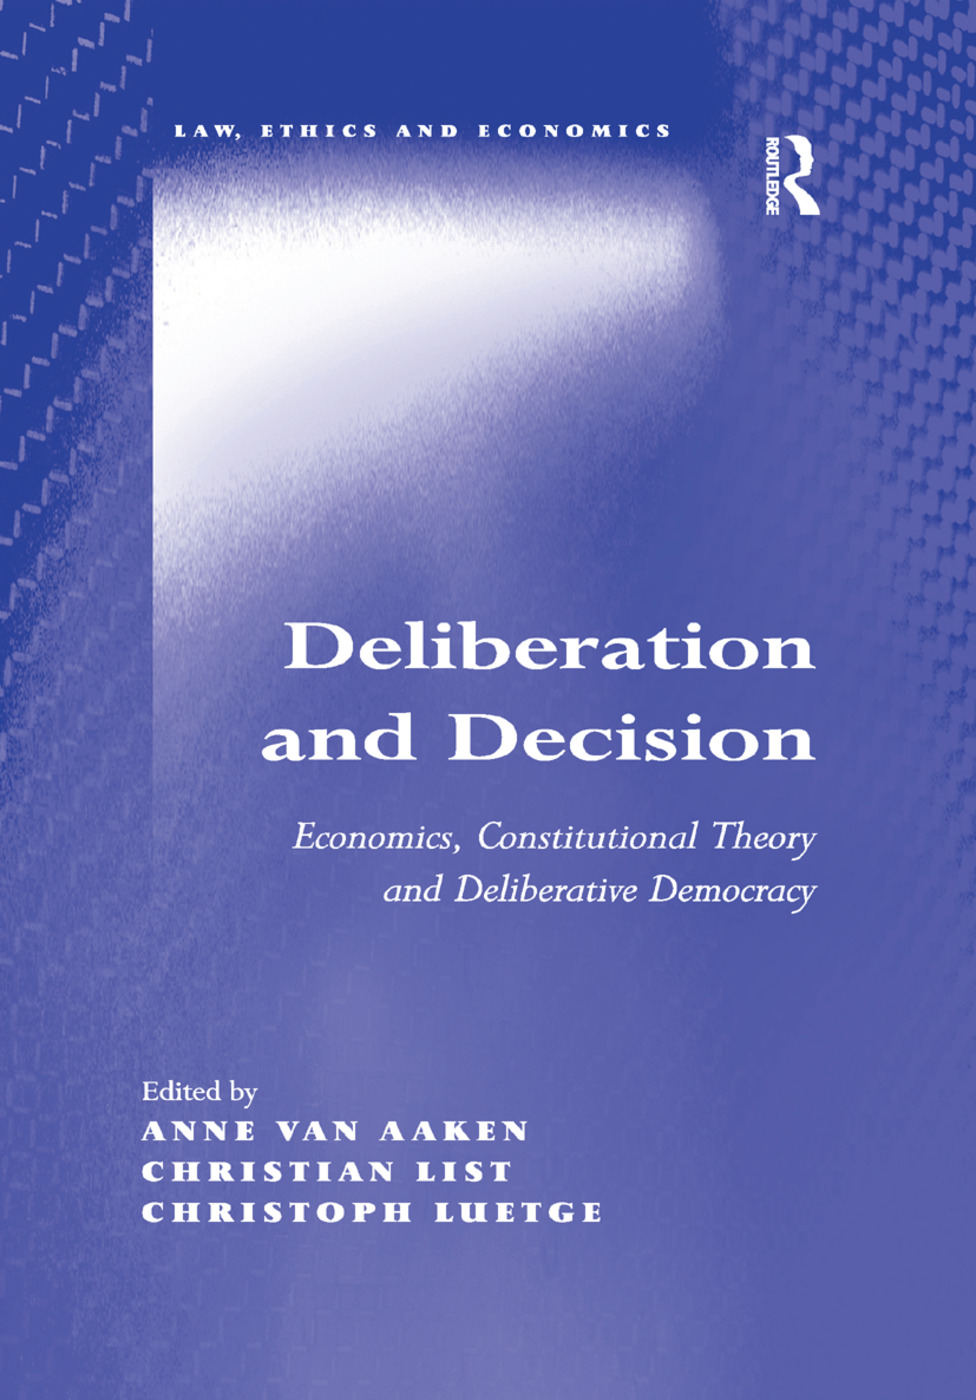 Deliberation and Decision: Economics, Constitutional Theory and Deliberative Democracy book cover